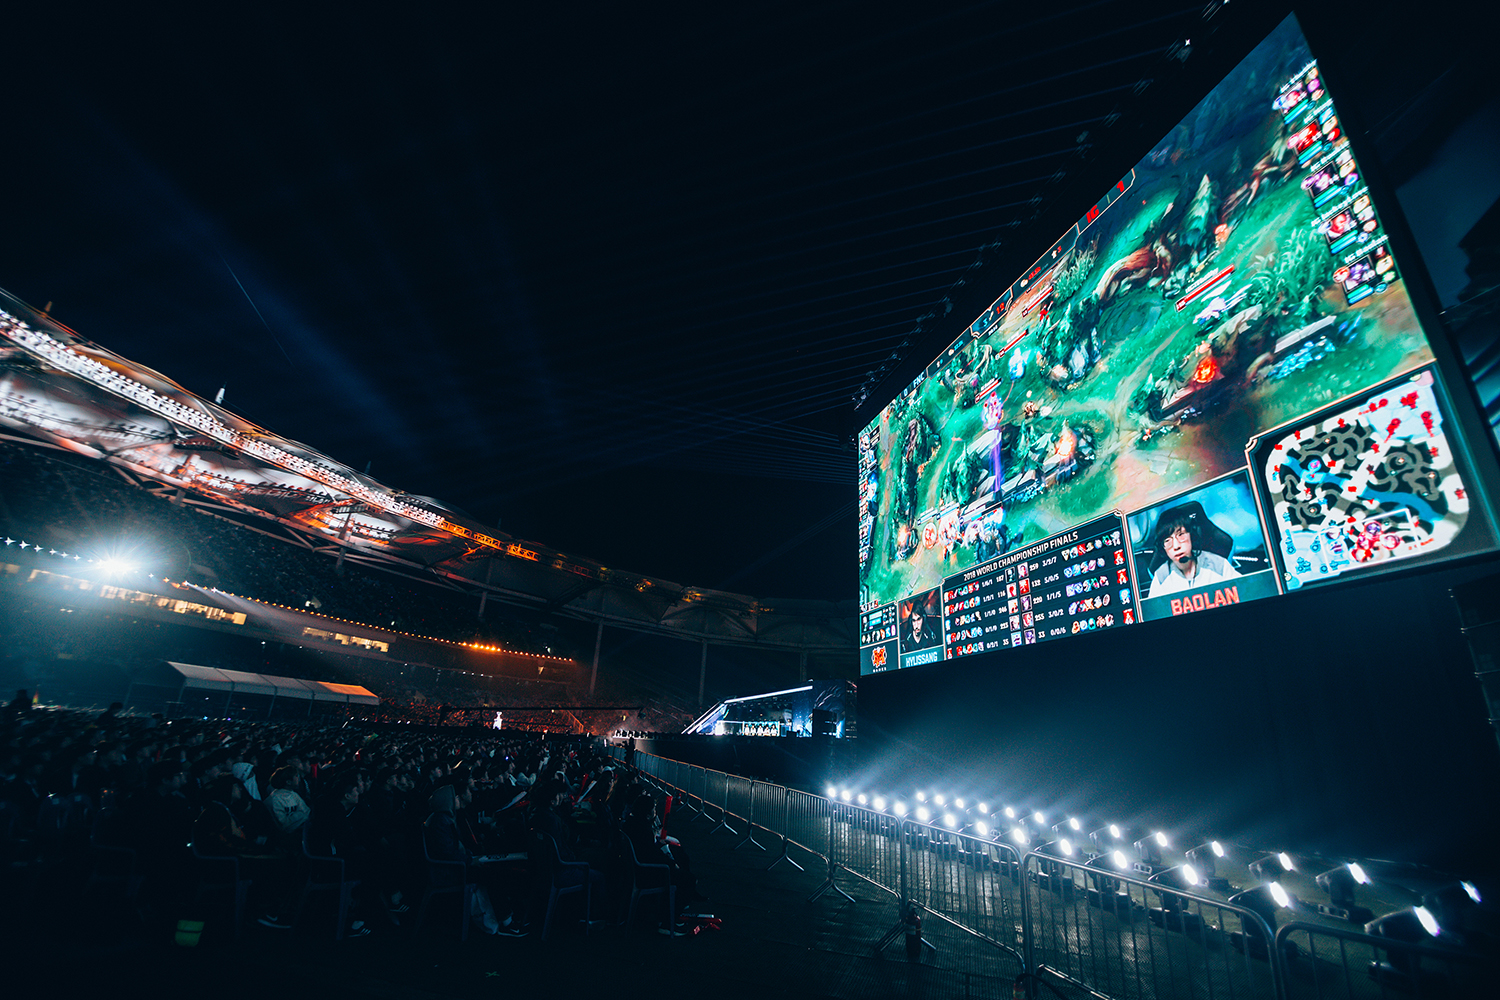 League of Legends fans watching big screen at 2018 League of Legends World Championship Finals sponsored by Mastercard on November 3, 2018 in Incheon, South Korea. Photo by Hannah Smith/ESPAT Media for Mastercard